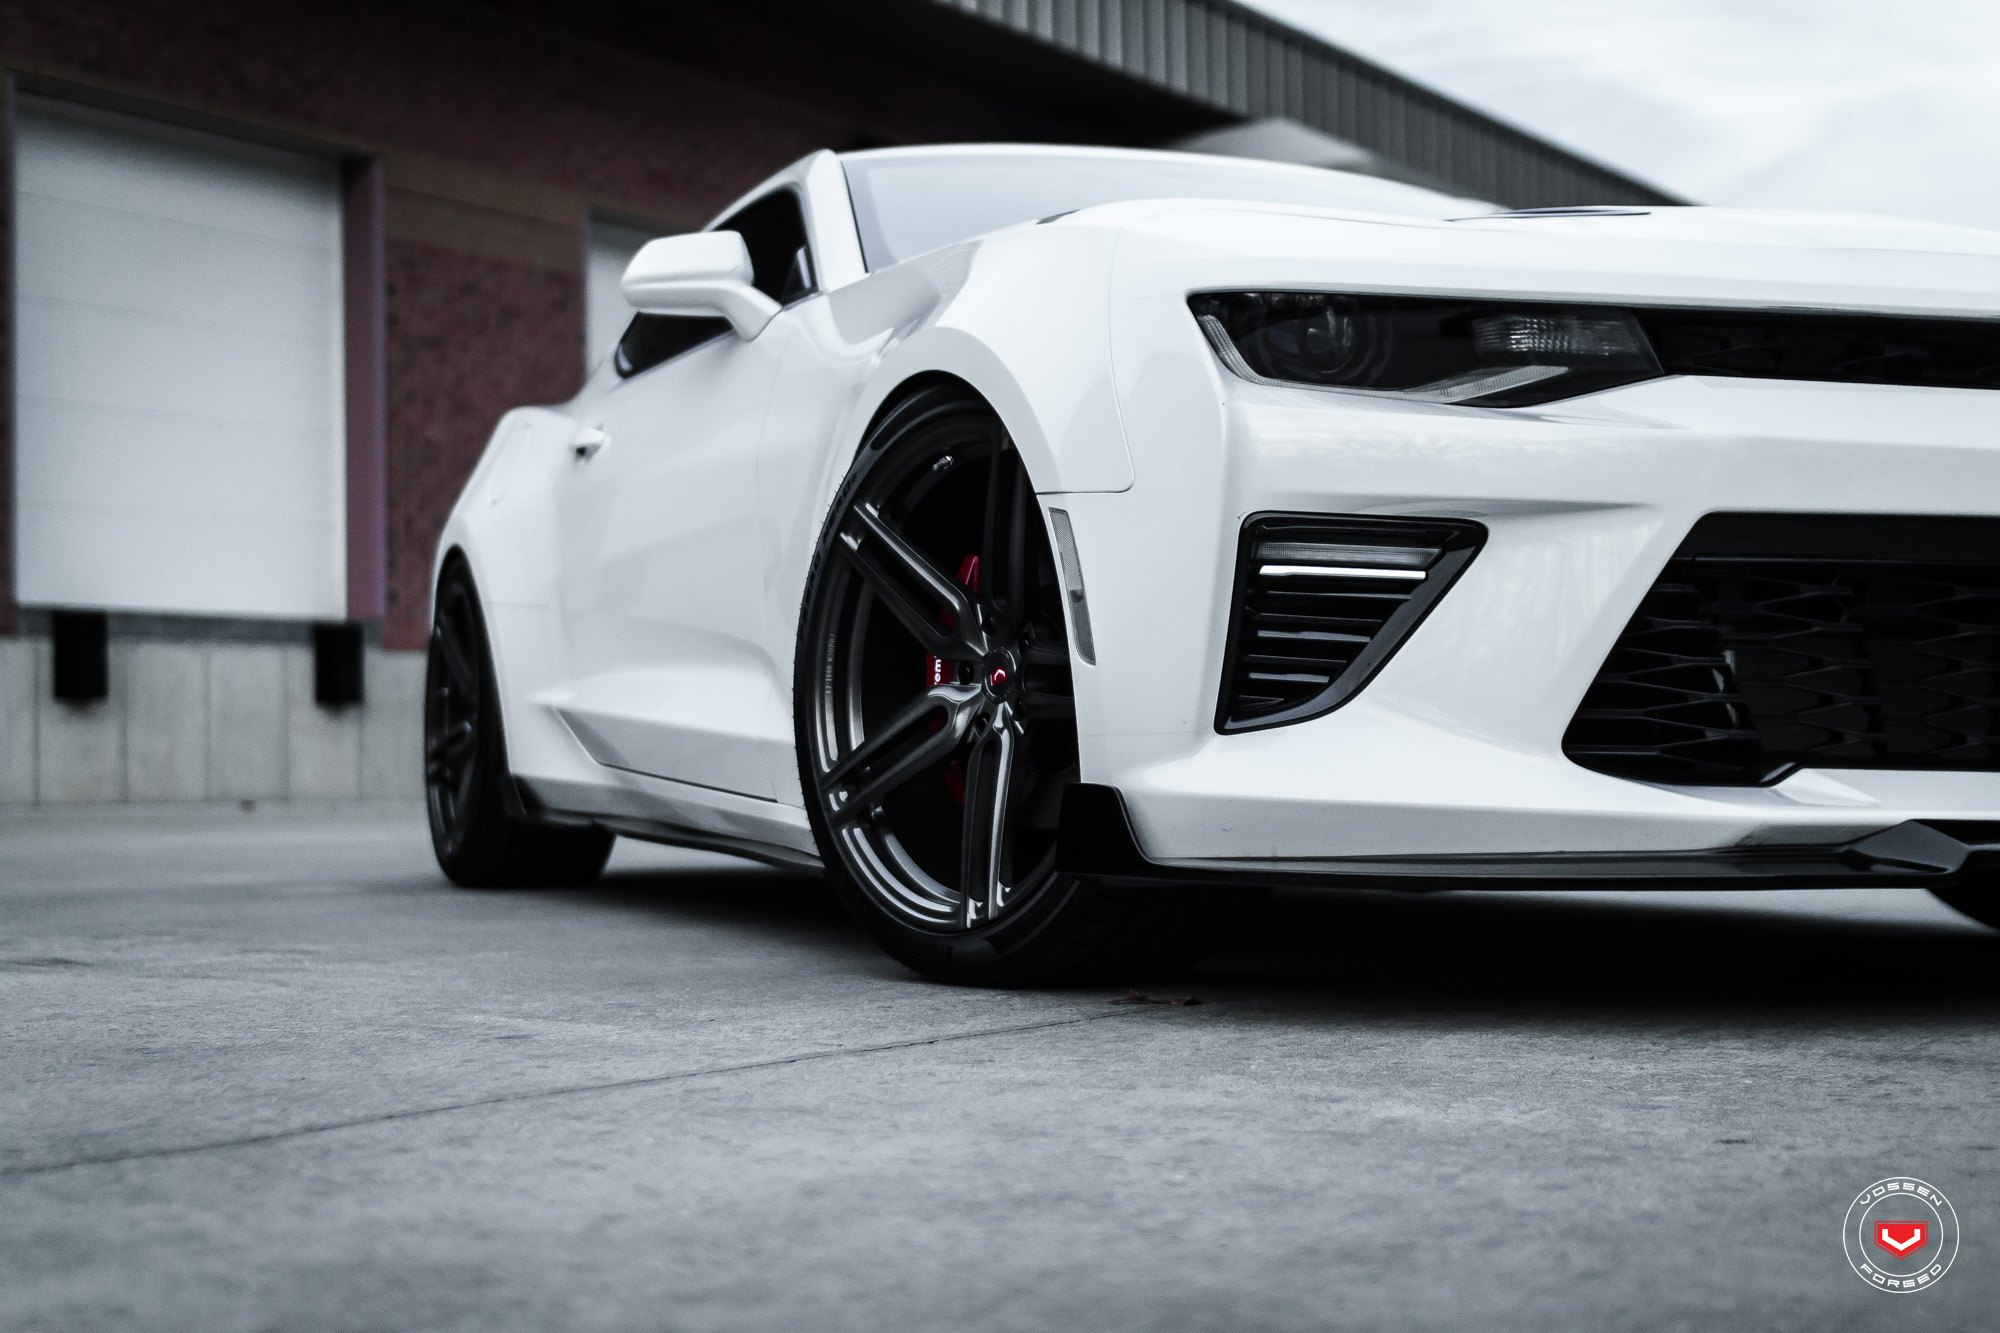 Bumper Air Ducts on White Chevy Camaro - Photo by Vossen